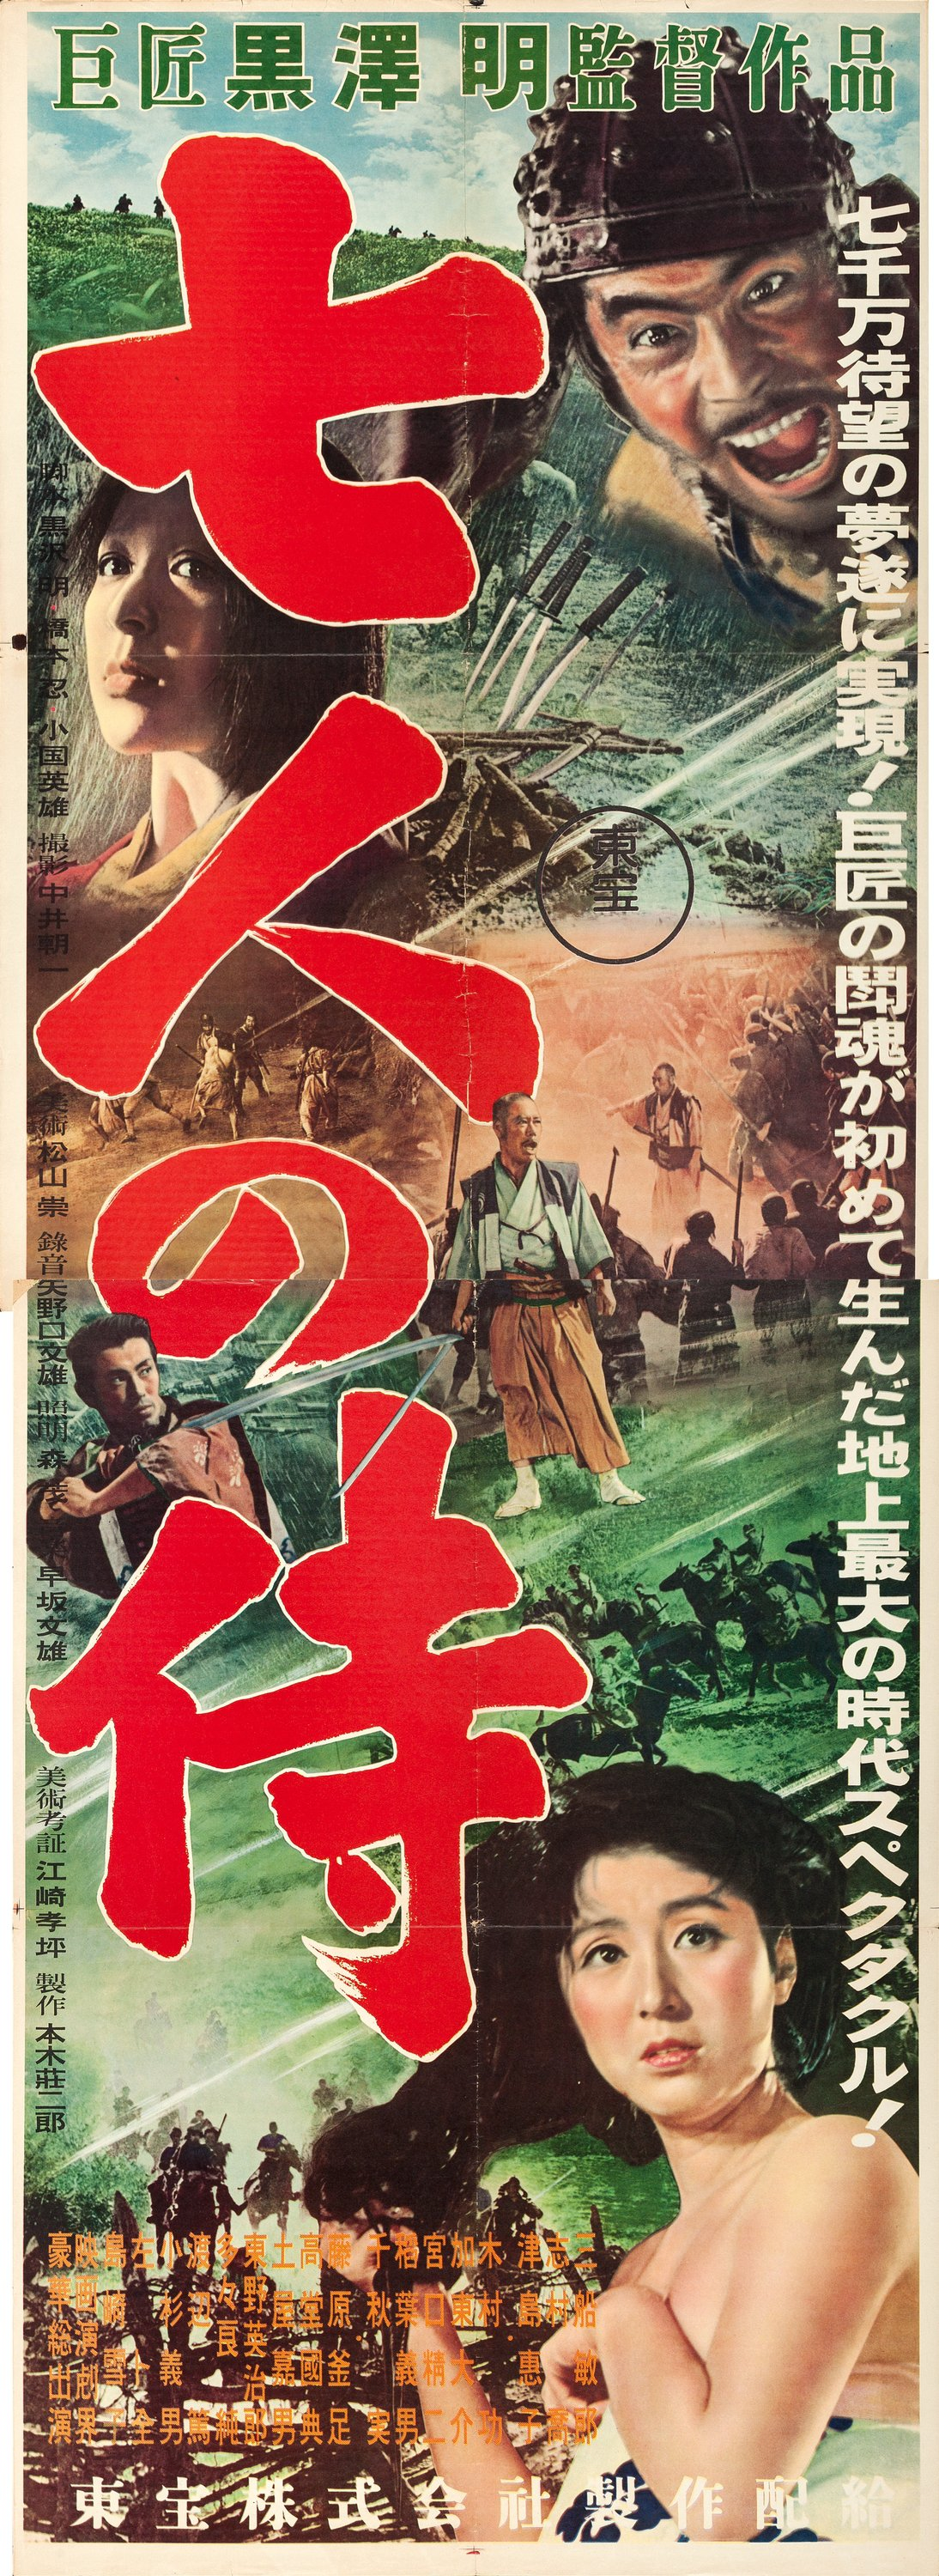 "A 1954 Japanese movie poster for Seven Samurai (Shichinin no Samurai). It is the only known example of its type. The kanji on the poster translate to: ""The dream awaited by 70 million finally has come true! A massive spectacular samurai drama which is created, for the first time, by the fighting spirit of the Maestro!"""